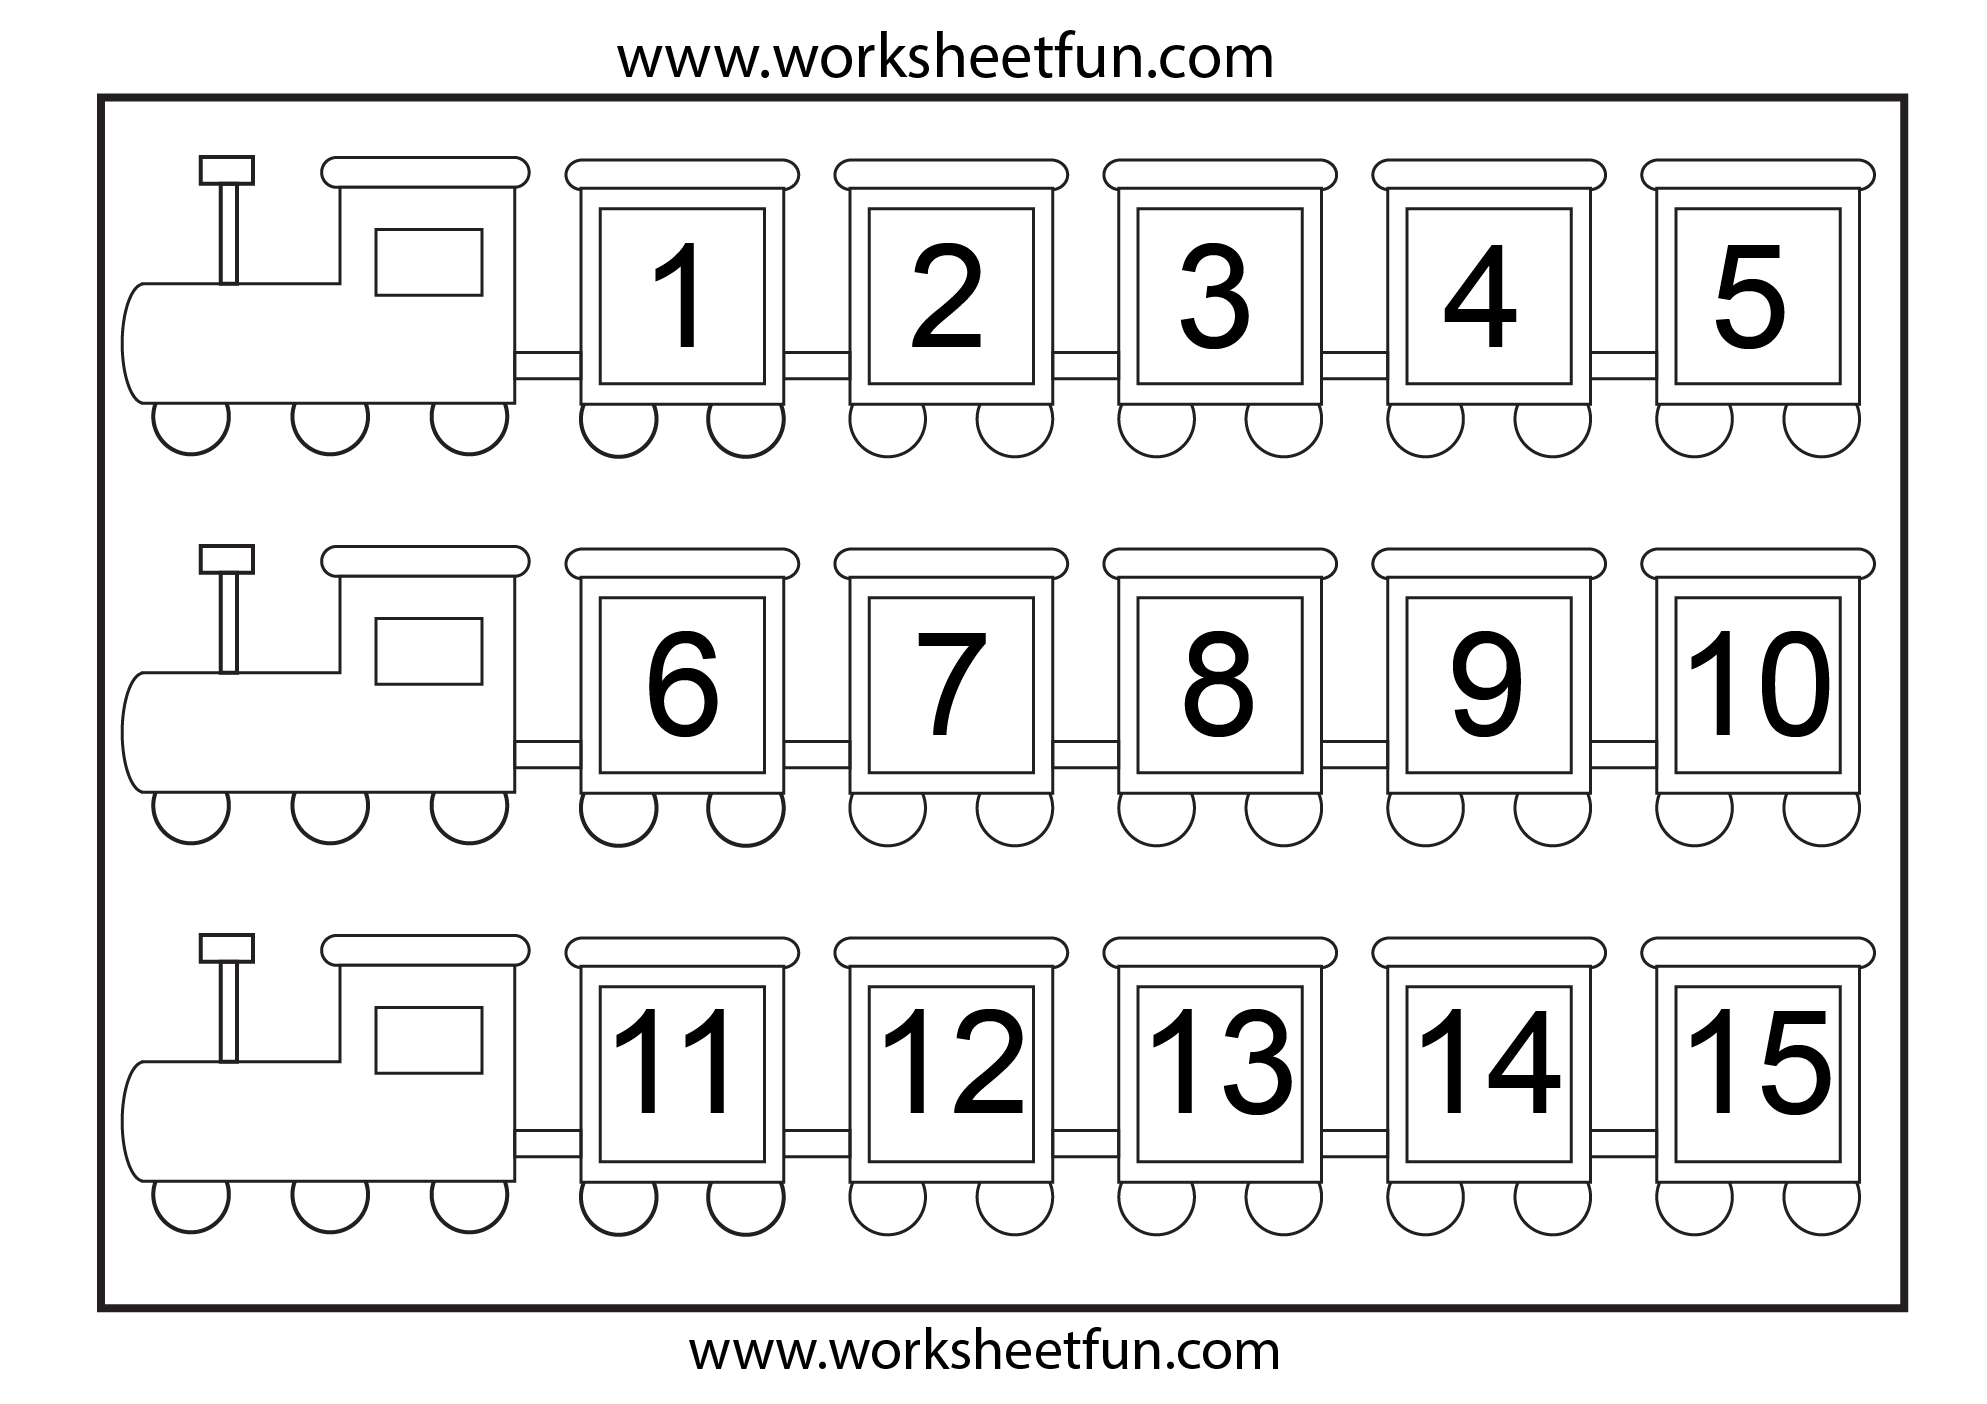 Missing Number Worksheet New 827 Missing Number Worksheet